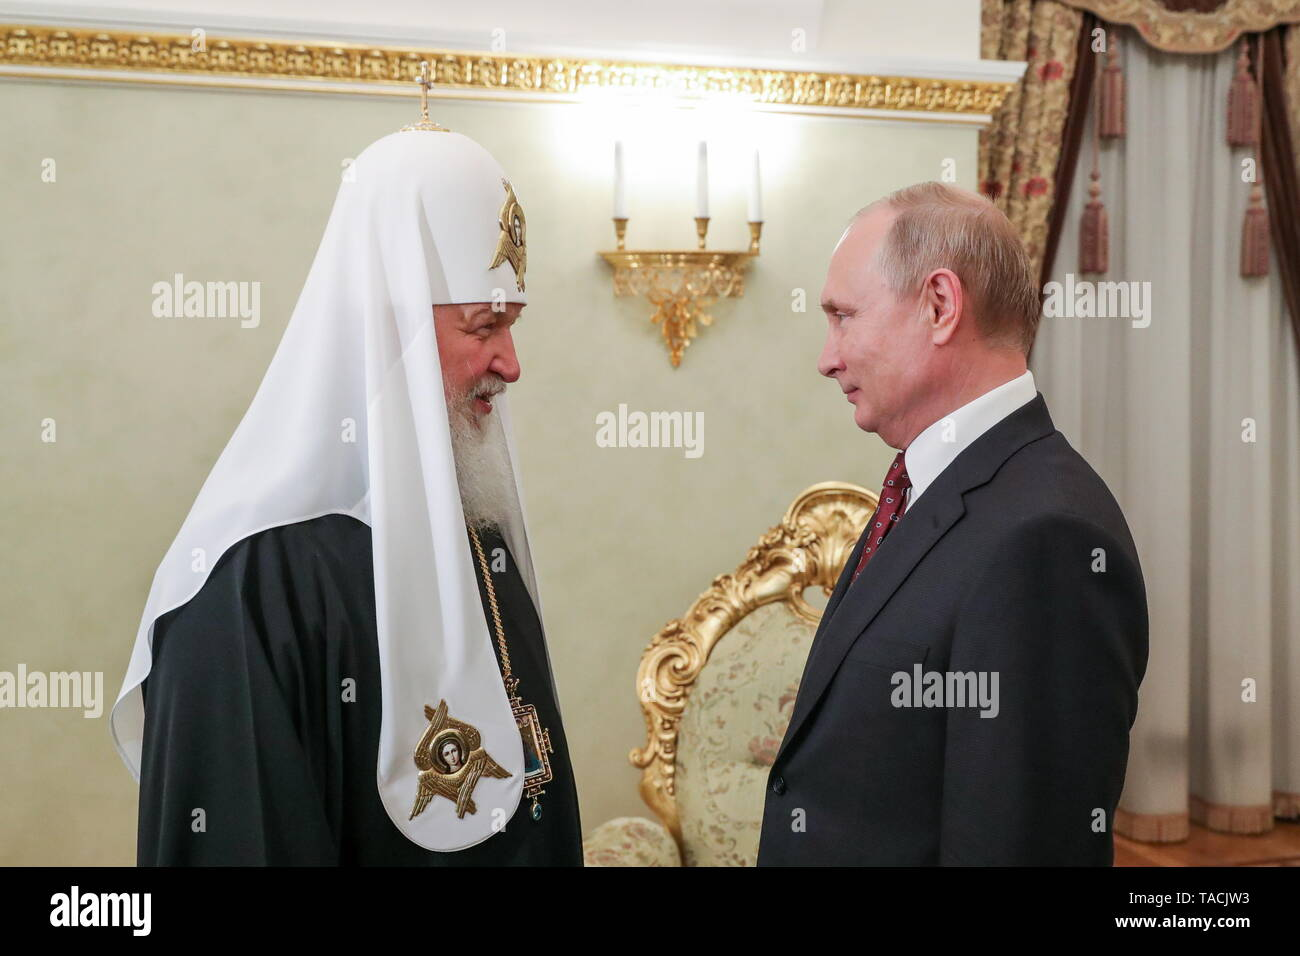 Moscow, Russia. 24th May, 2019. MOSCOW, RUSSIA - MAY 24, 2019: Patriarch Kirill (L) of Moscow and All Russia and Russia's President Vladimir Putin during a meeting at the Moscow Kremlin. Mikhail Klimentyev/Russian Presidential Press and Information Office/TASS Credit: ITAR-TASS News Agency/Alamy Live News - Stock Image